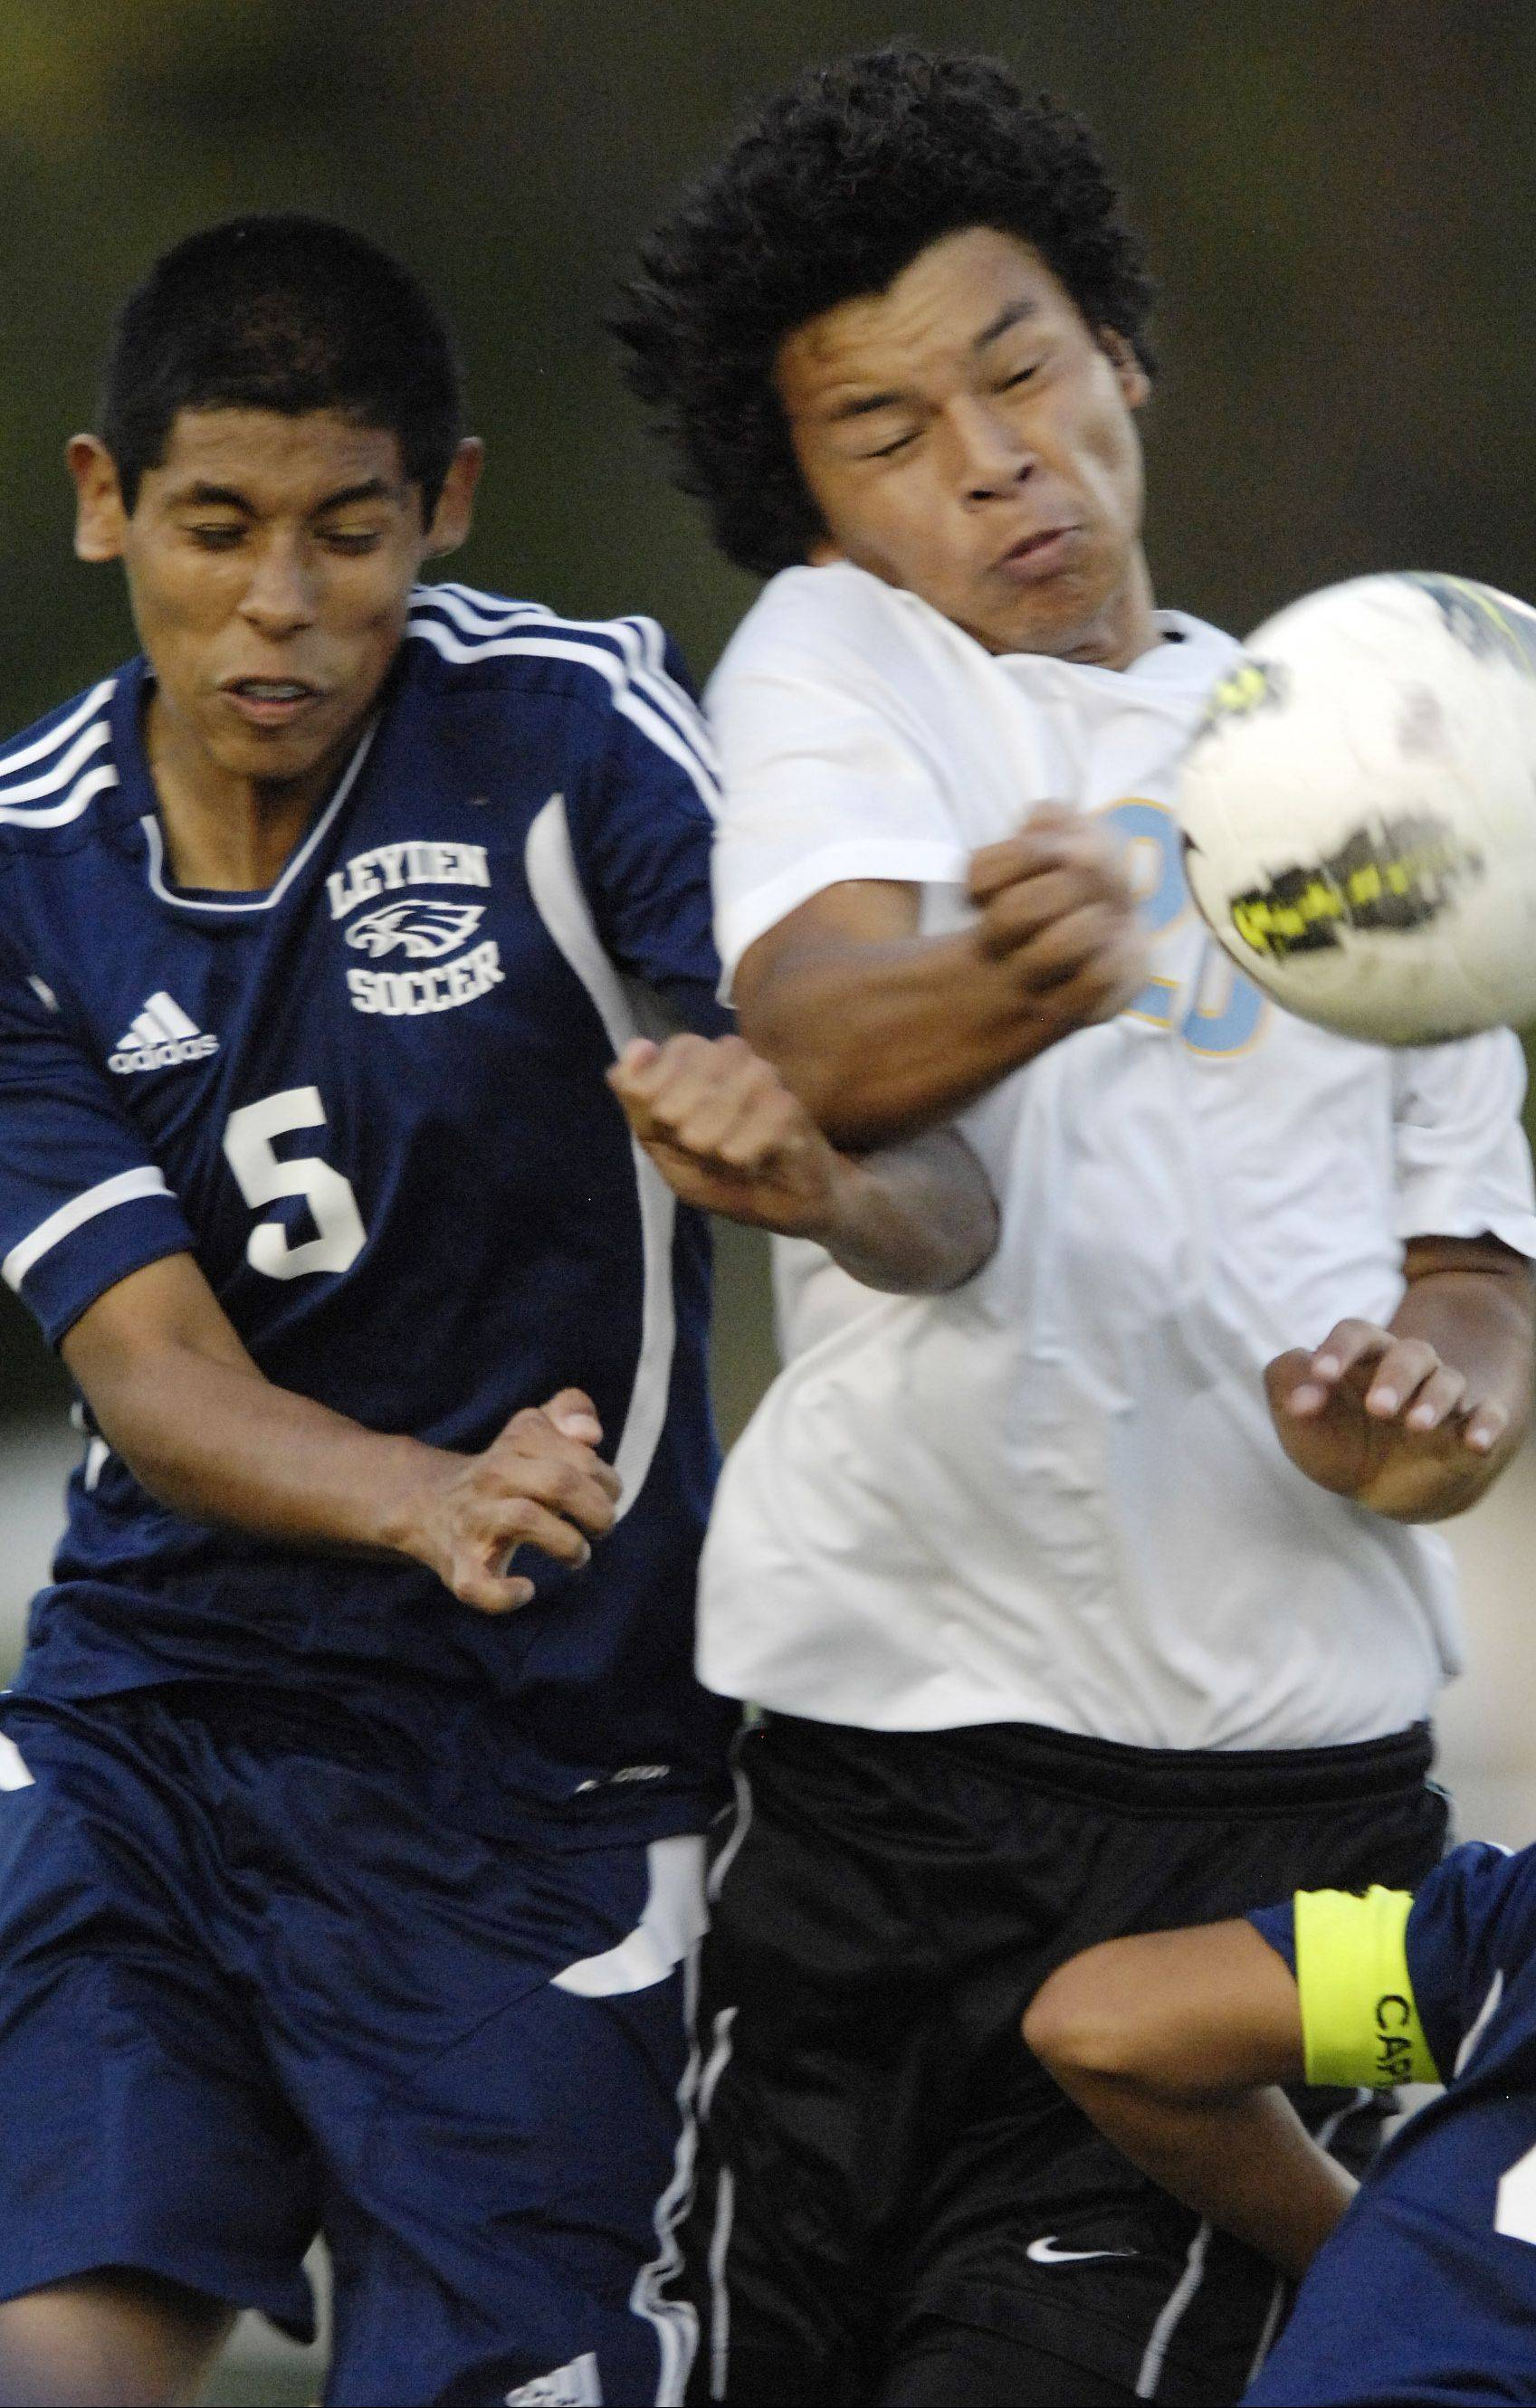 Maine West�s Nelson Herrera, at right, vying for possession with Leyden�s Moises Merlos last season, is a two-time all-area team selection with 56 goals entering his senior season.